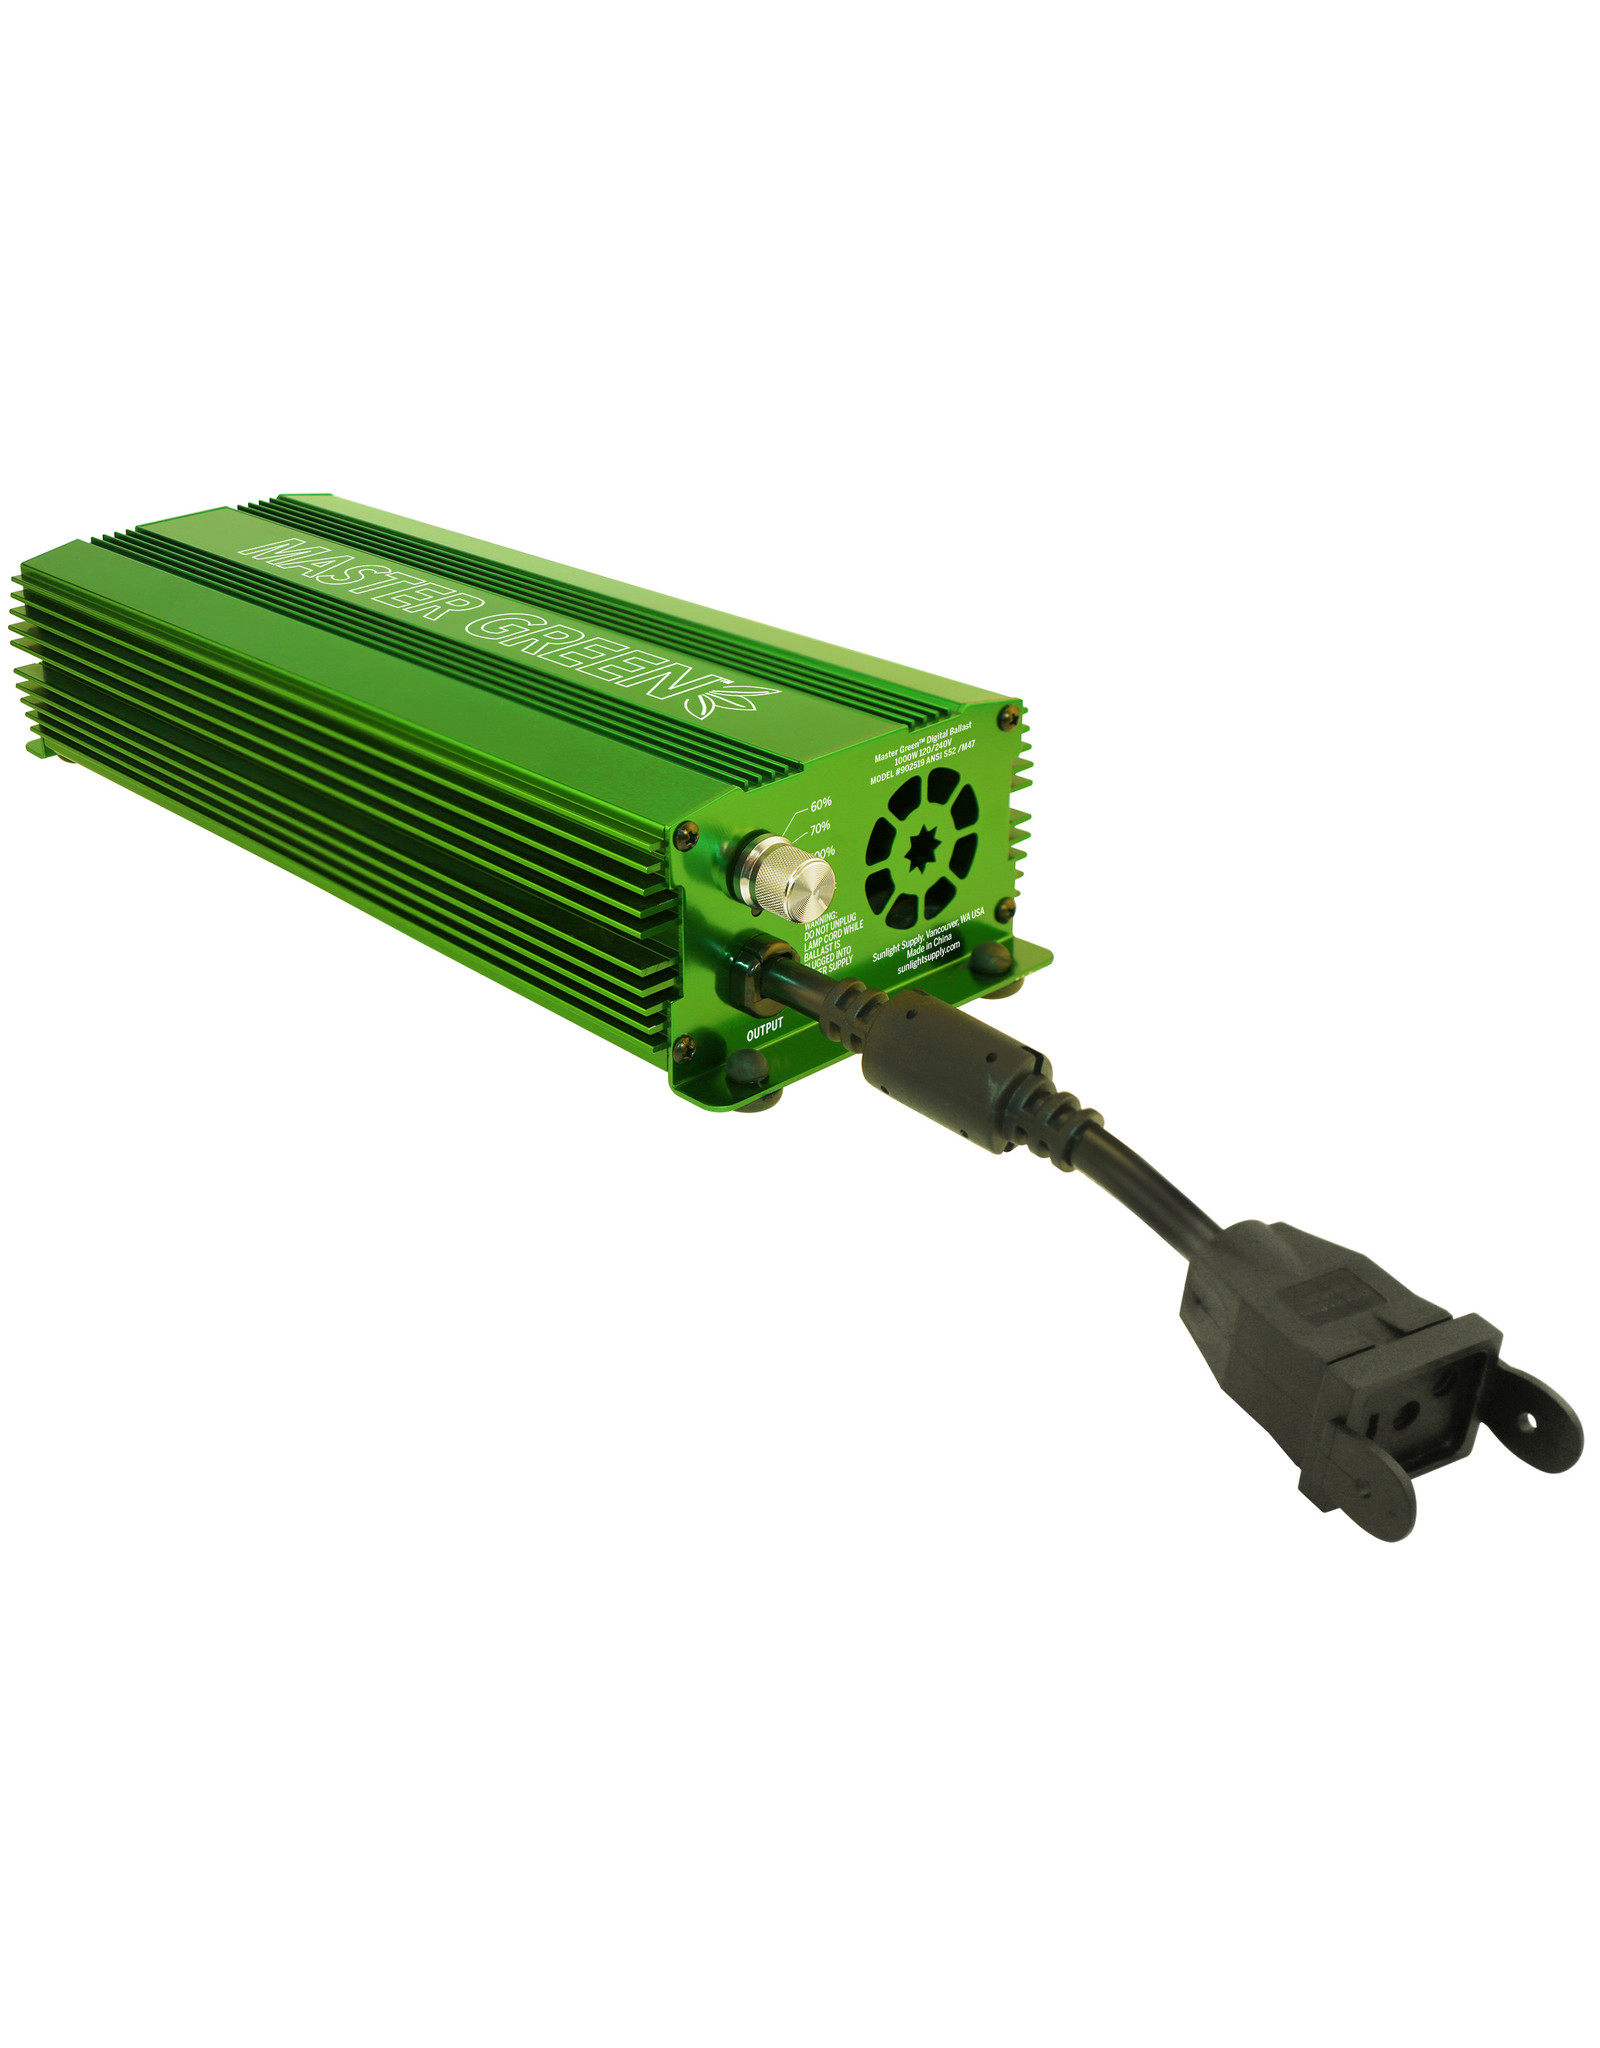 Galaxy Master Green Electronic Ballast 1000 Watt